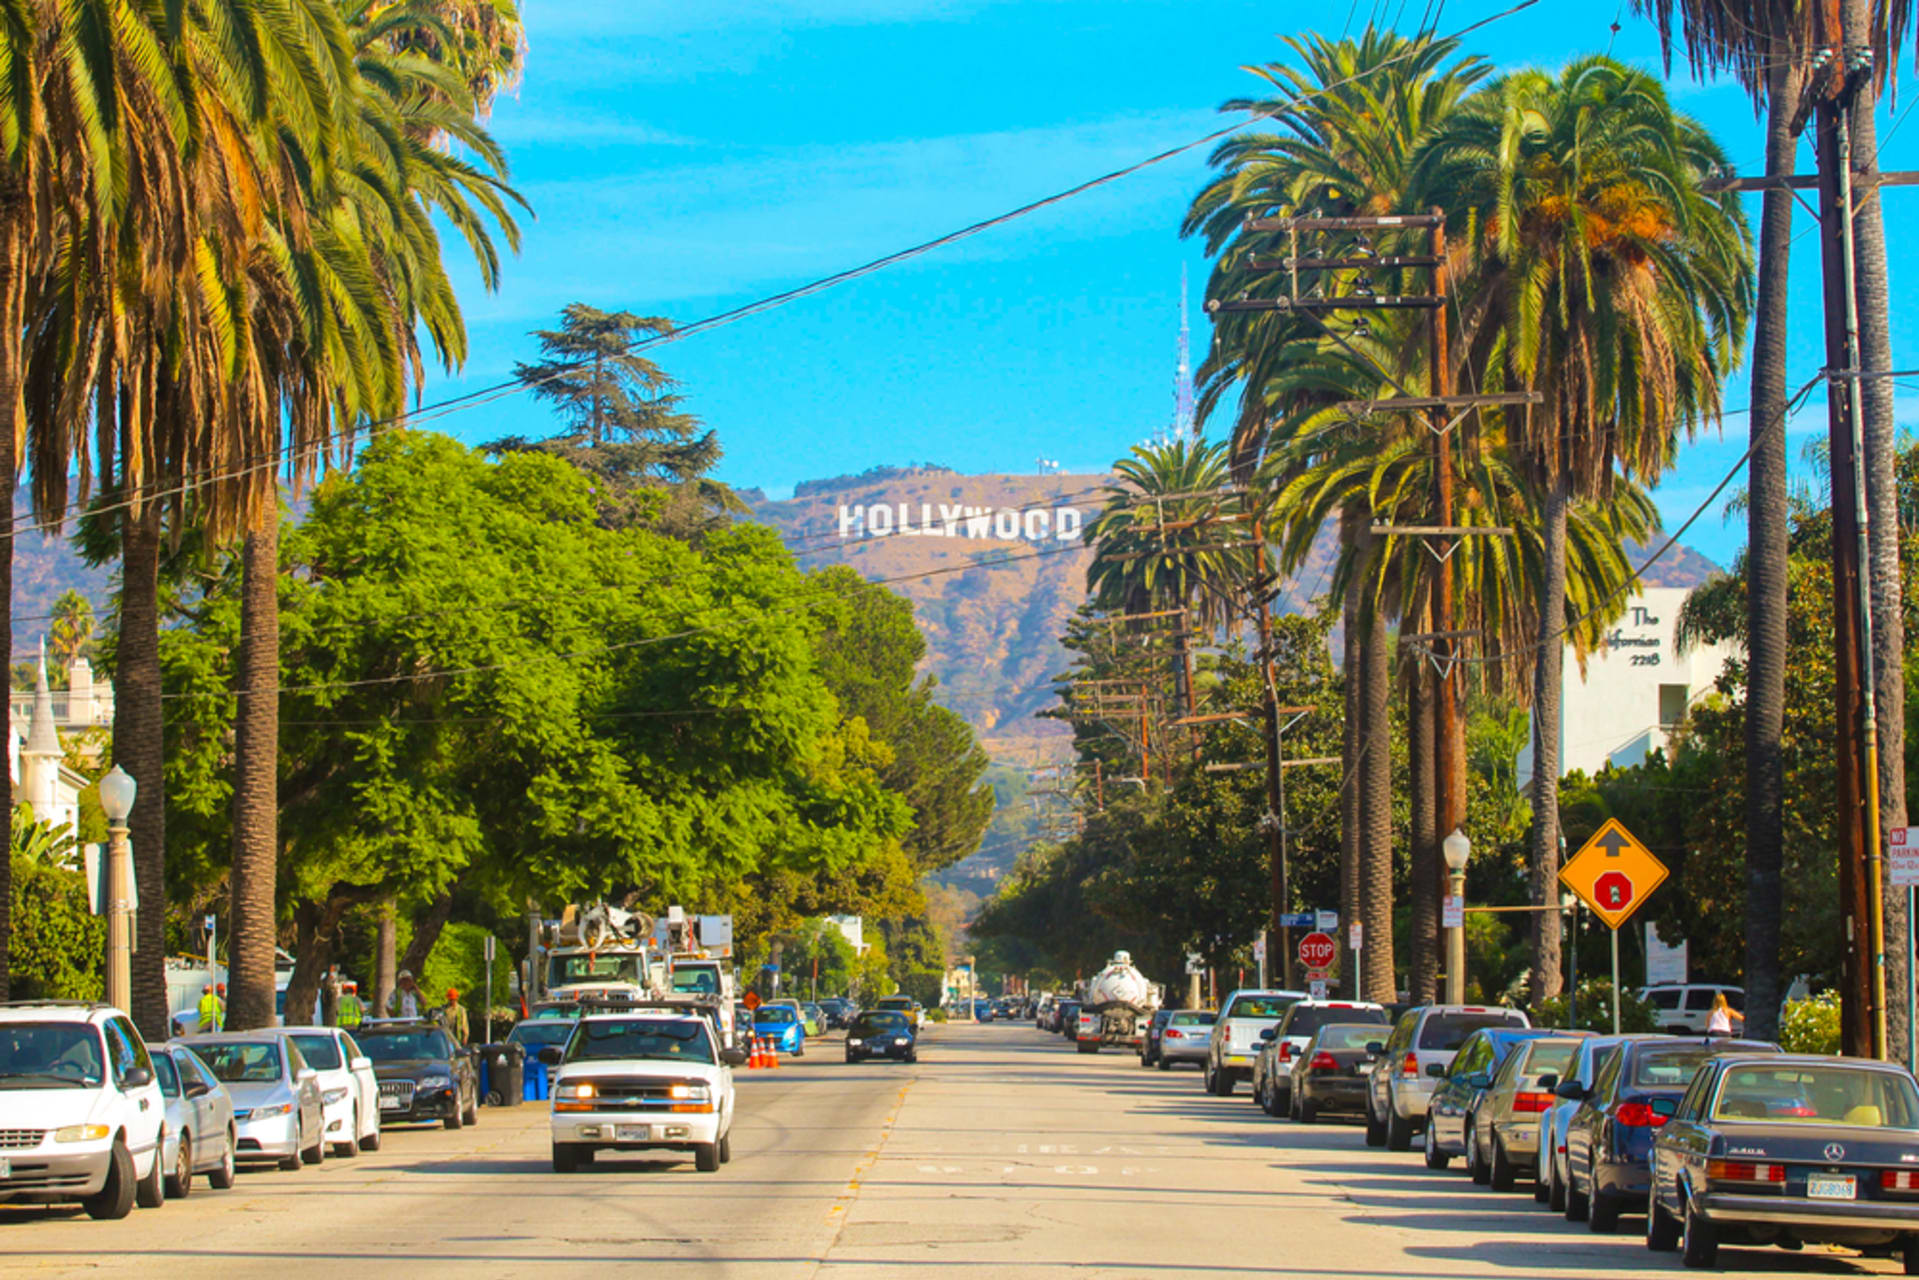 Los Angeles - Walk with the Stars: Downtown Hollywood